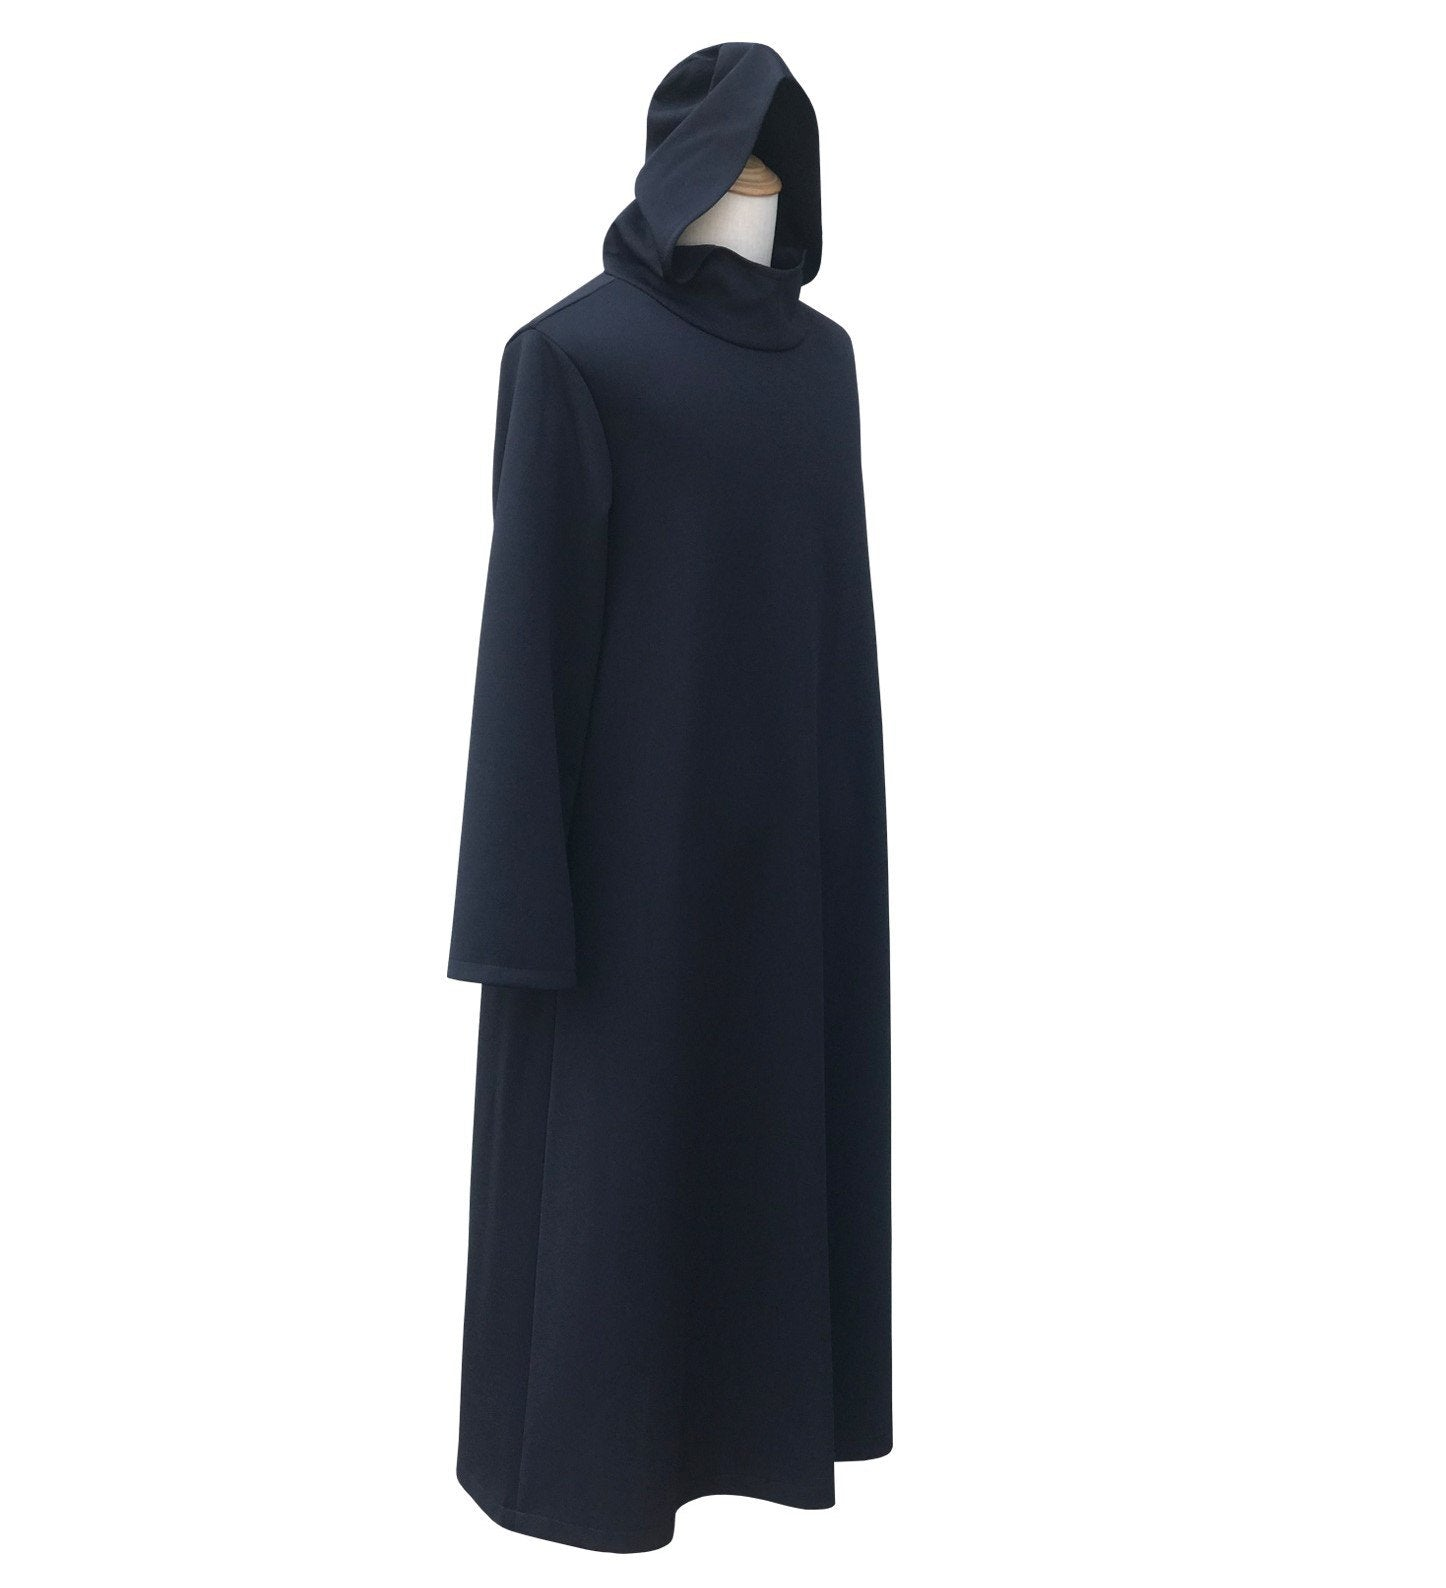 Plague Doctor Cape Hooded Cloak Halloween Cosplay Party Costume Robe for Adult